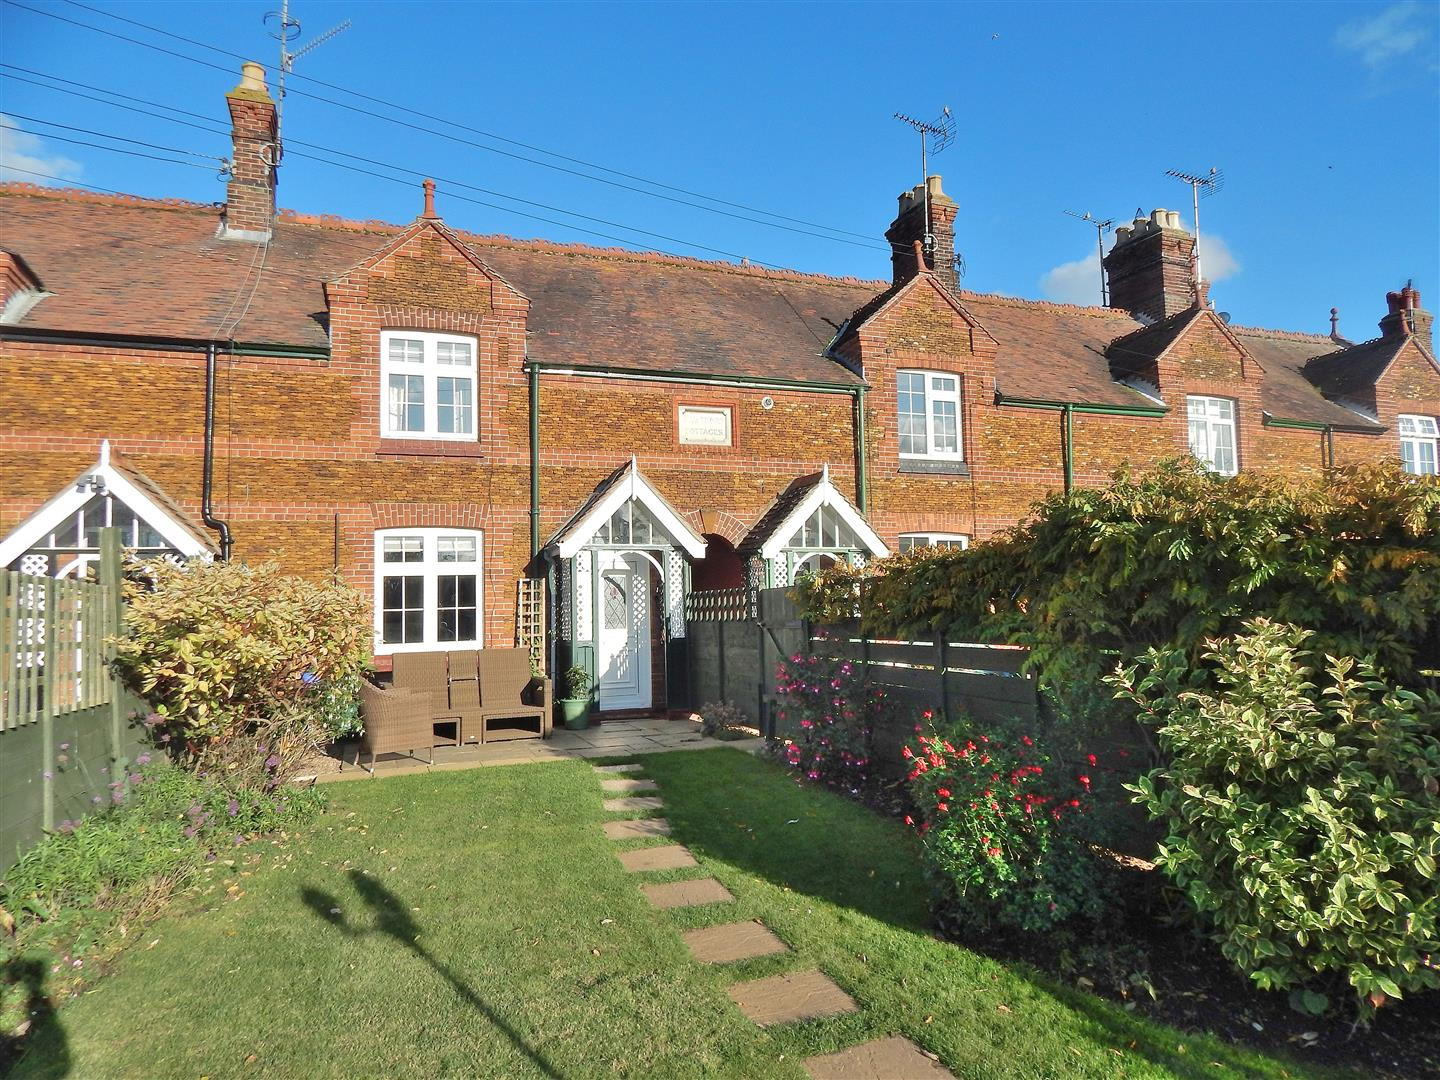 2 bed cottage for sale in King's Lynn, PE31 6QQ, PE31